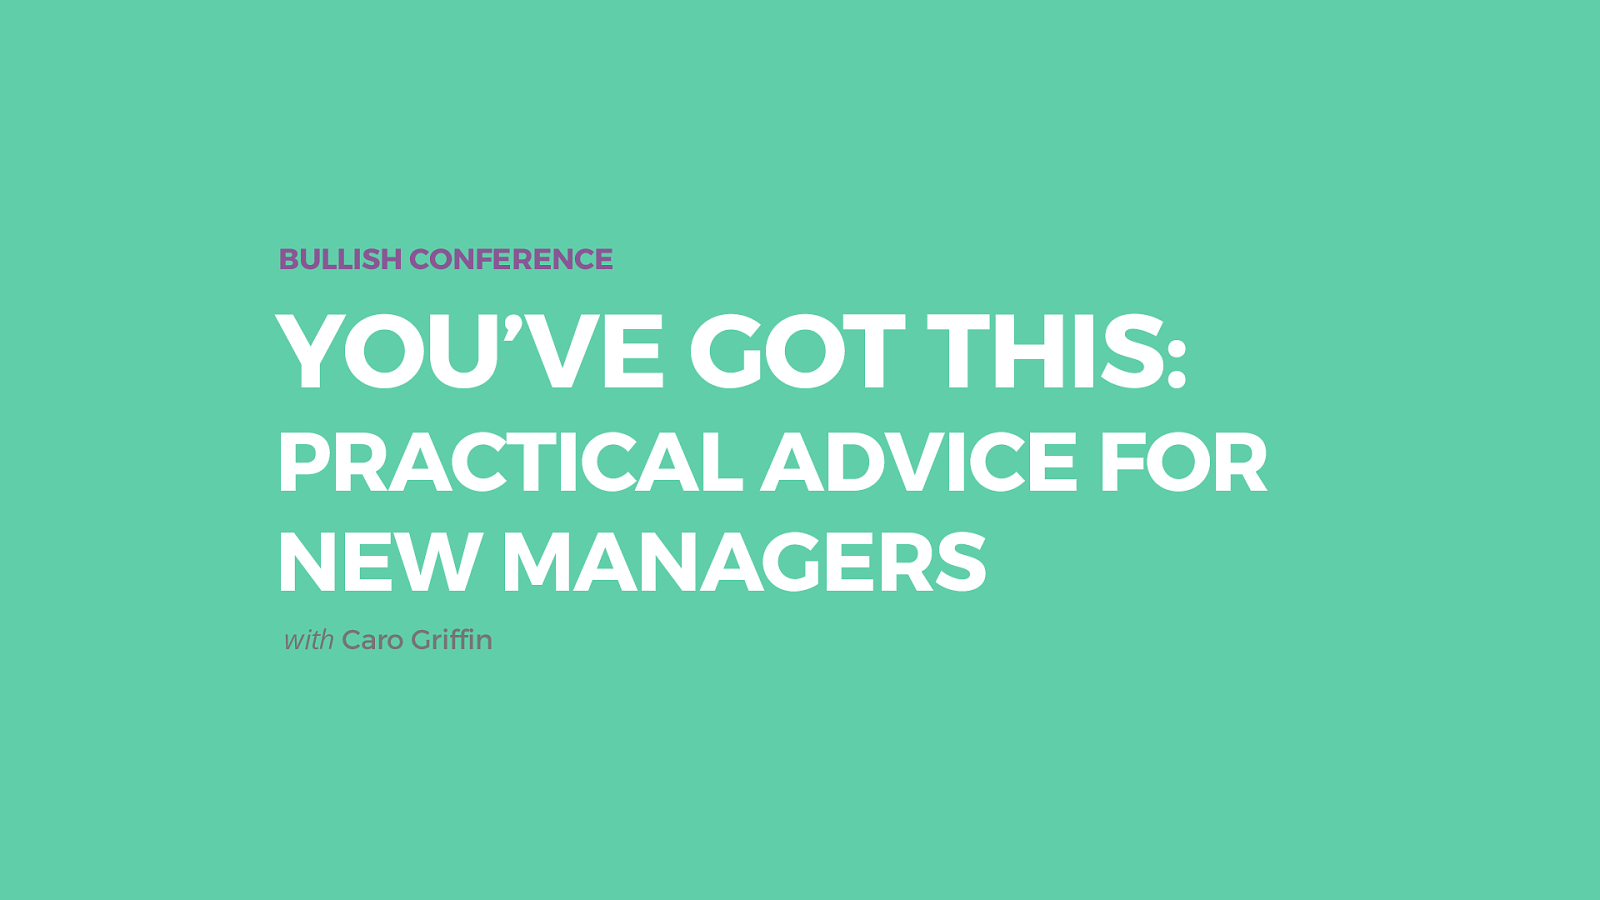 You've Got This: Practical Advice for New Managers